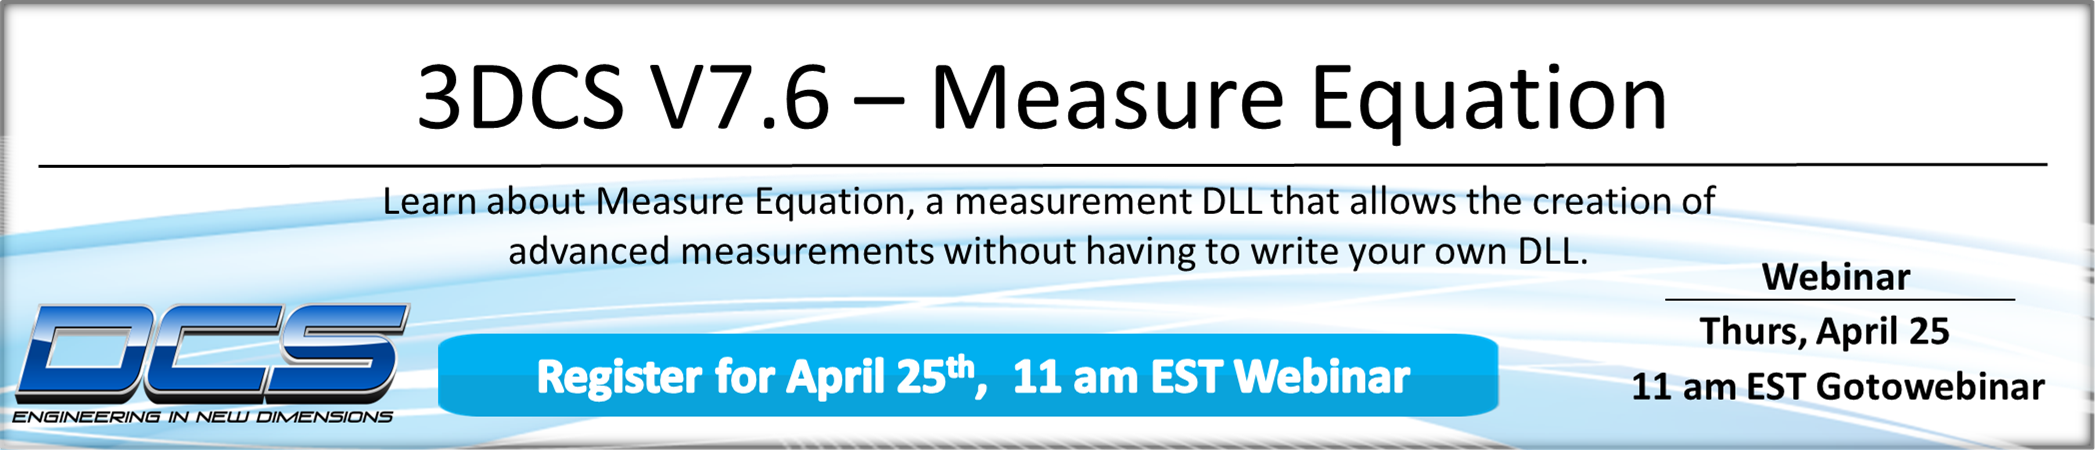 NEW TOPIC! Webinar Thursday - Equation Measure